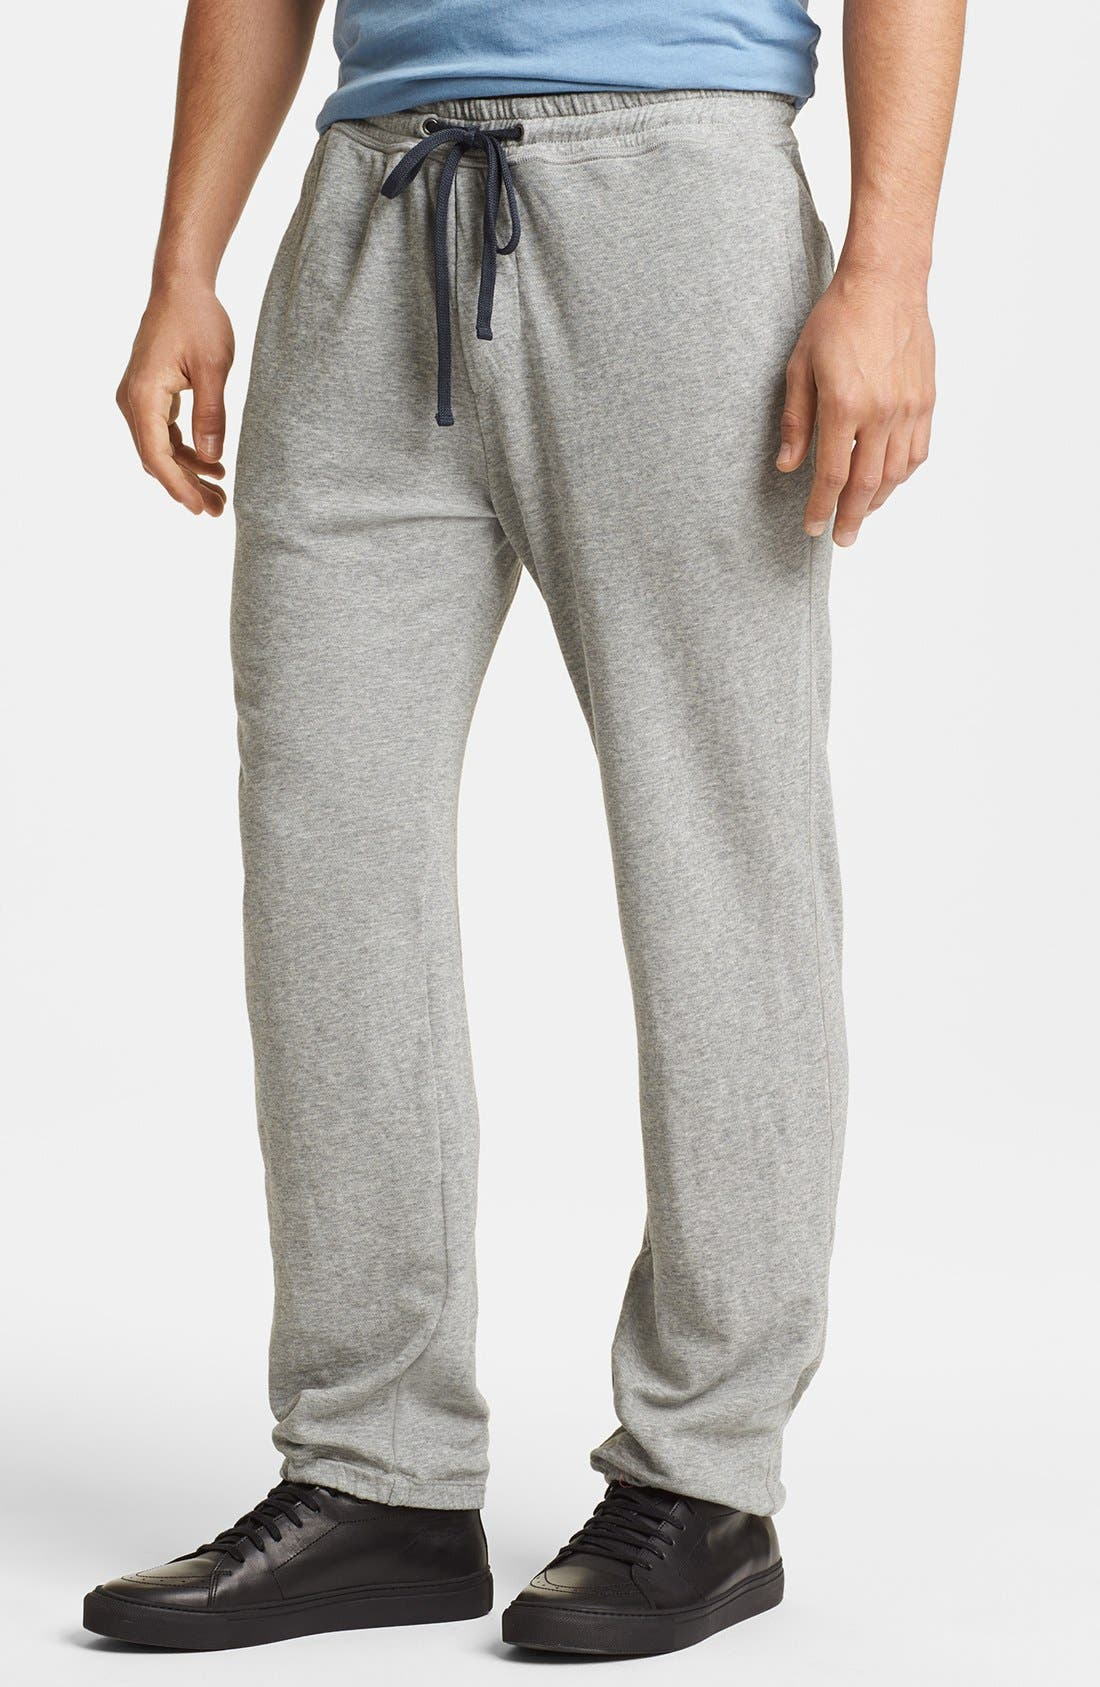 Classic Sweatpants,                         Main,                         color, Heather Grey